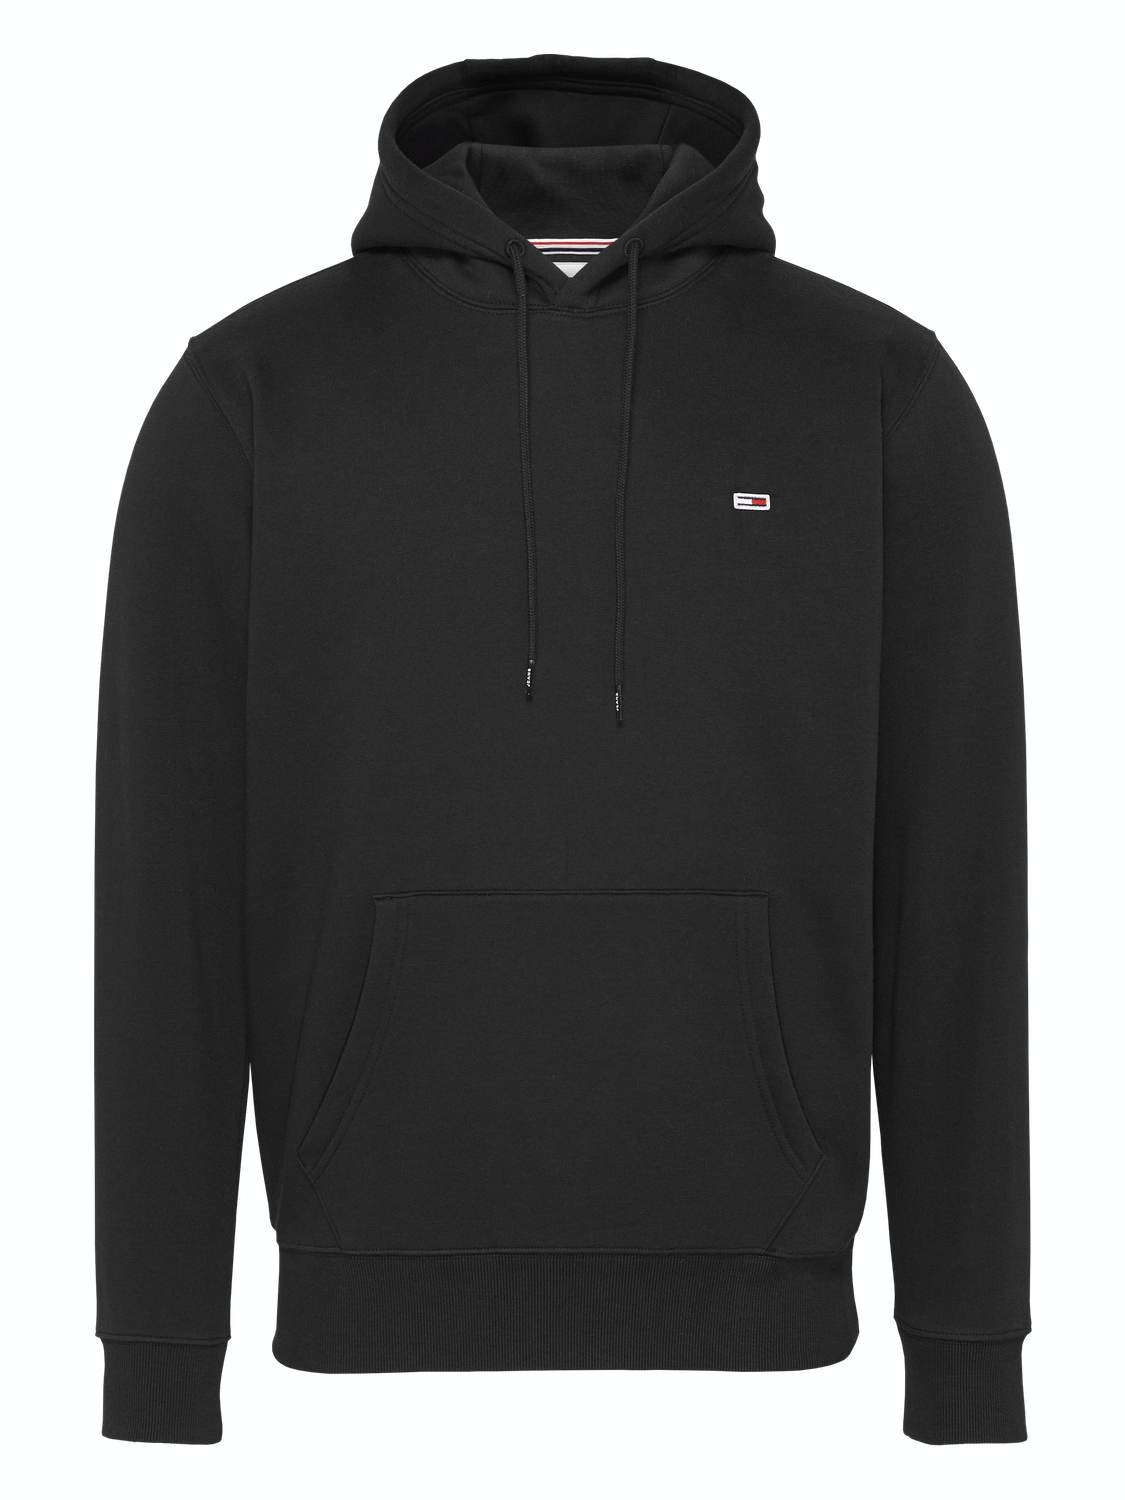 TOMMY HILFIGER - Fleece hoodie black | GATE 36 Hobro